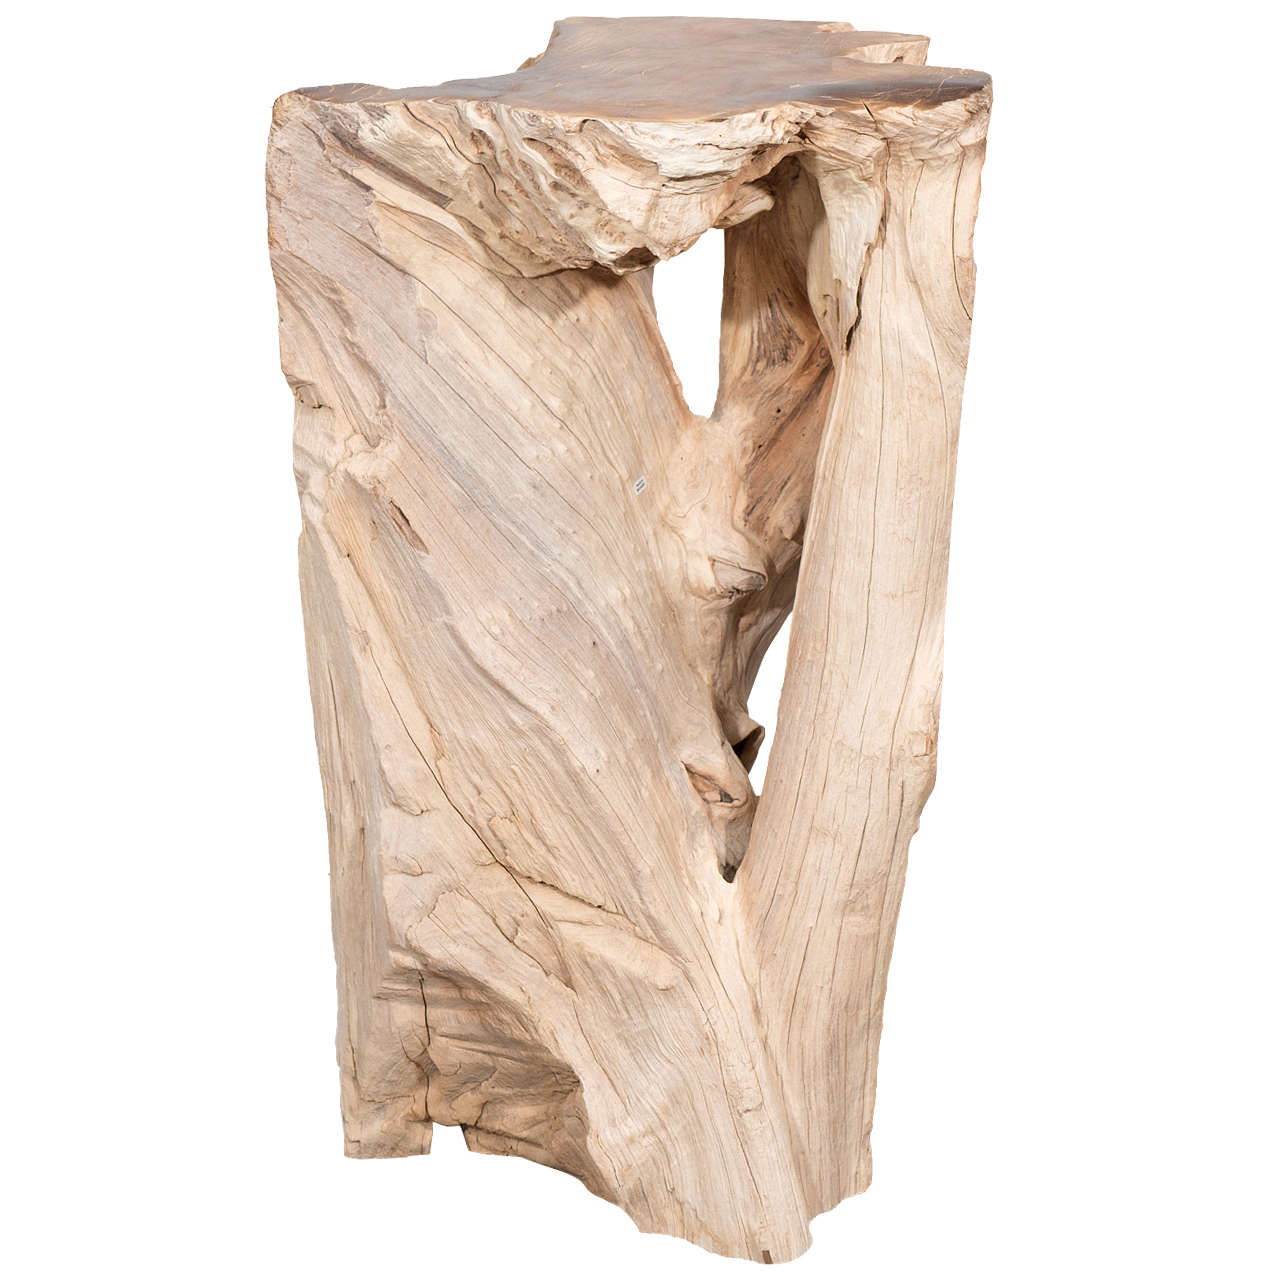 Organic Reclaimed Teak Wood Table Base Or Pedestal For Sale